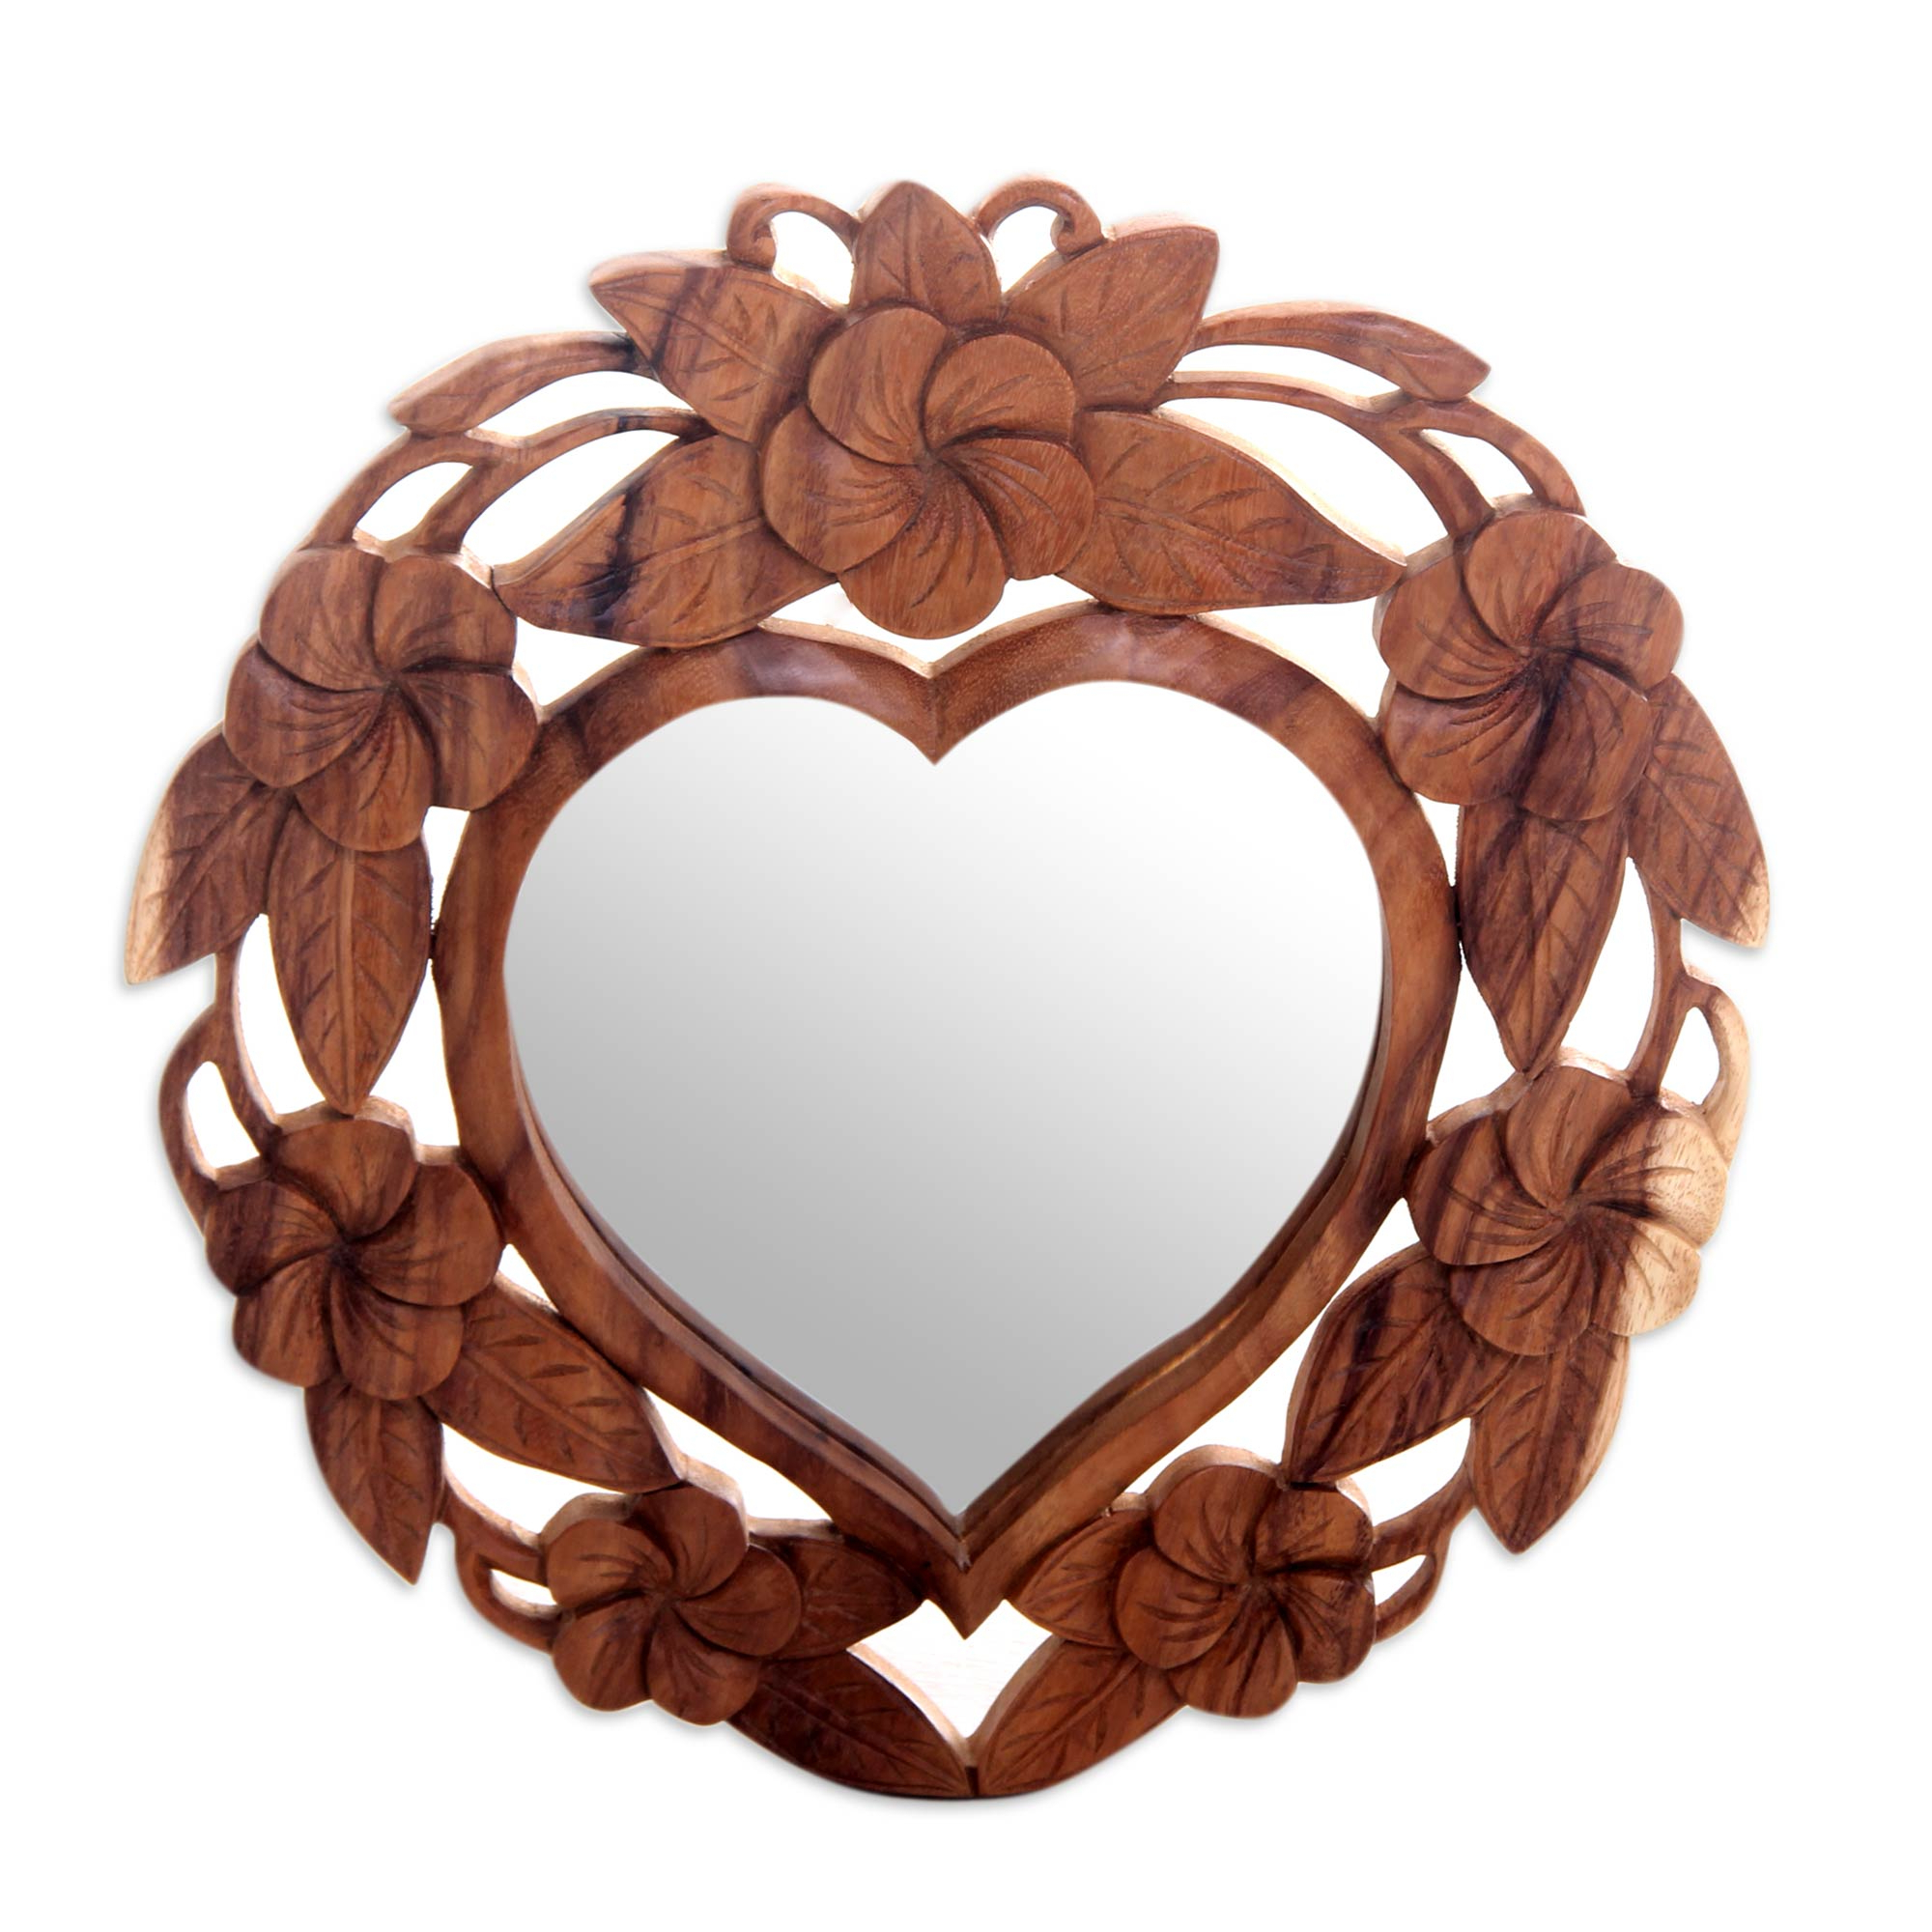 Latest Heart Shaped Wall Mirrors Pertaining To Heart Shaped Wood Wall Mirror With Floral Motif, 'frangipani Heart' (View 15 of 20)